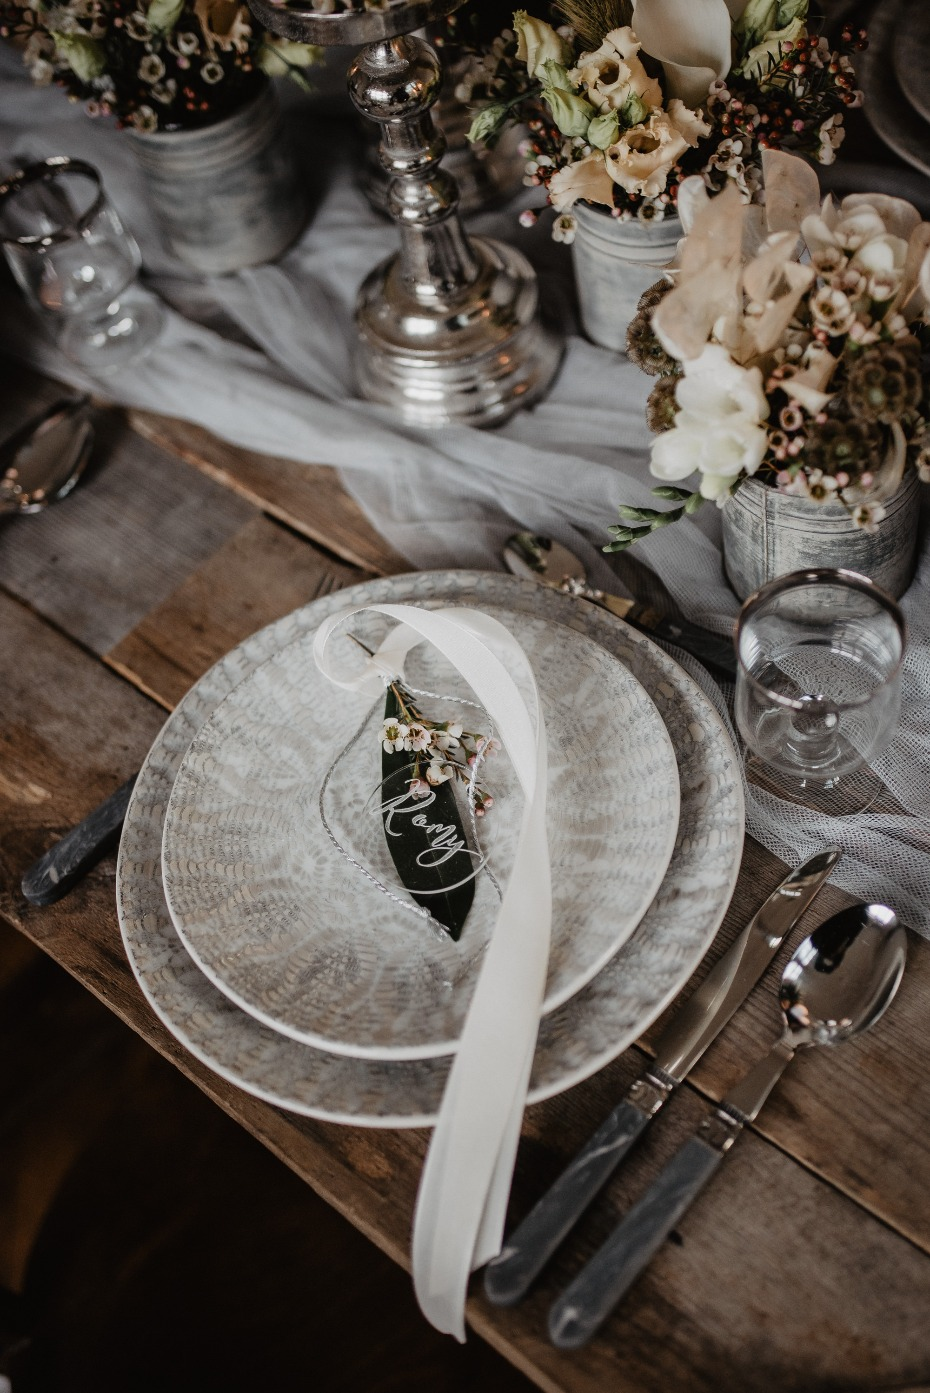 Rustic silver and white place setting